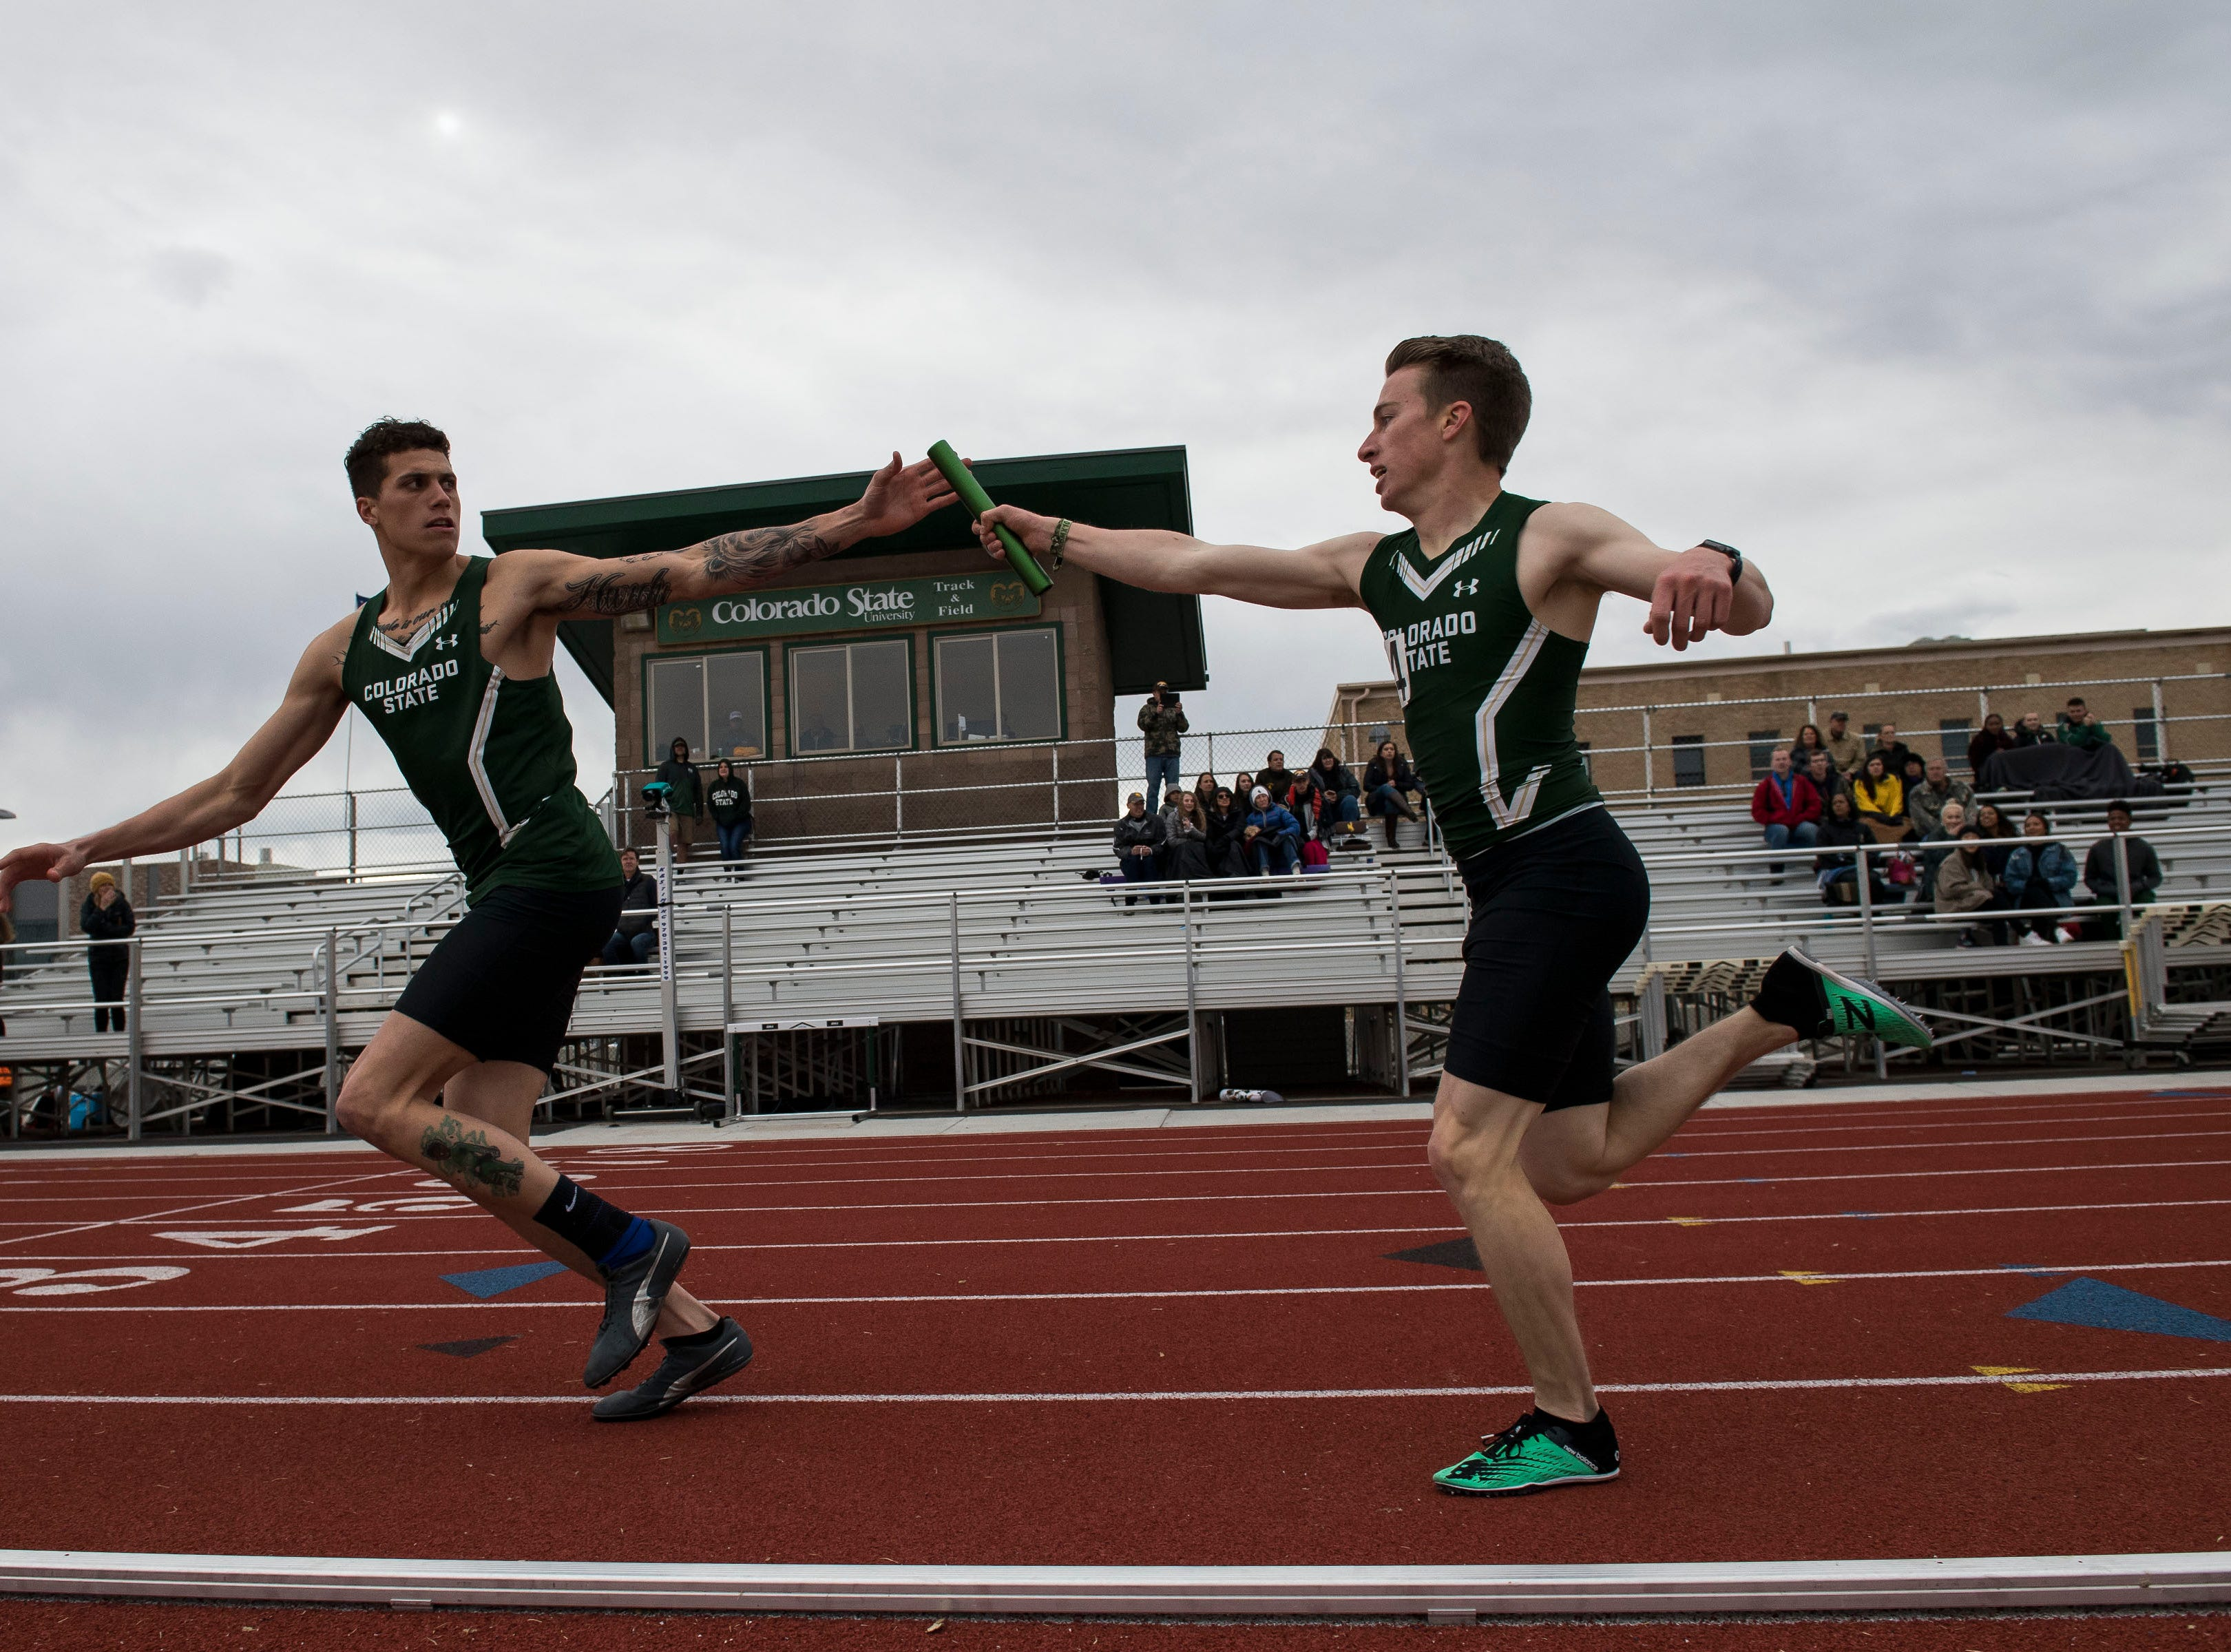 Colorado State University sophomore Caleb Hardy takes the handoff from Nick Fondiller in the mens 4x400-meter relay on Saturday, March 23, 2019, at the Jack Christiansen Memorial Track in Fort Collins, Colo.